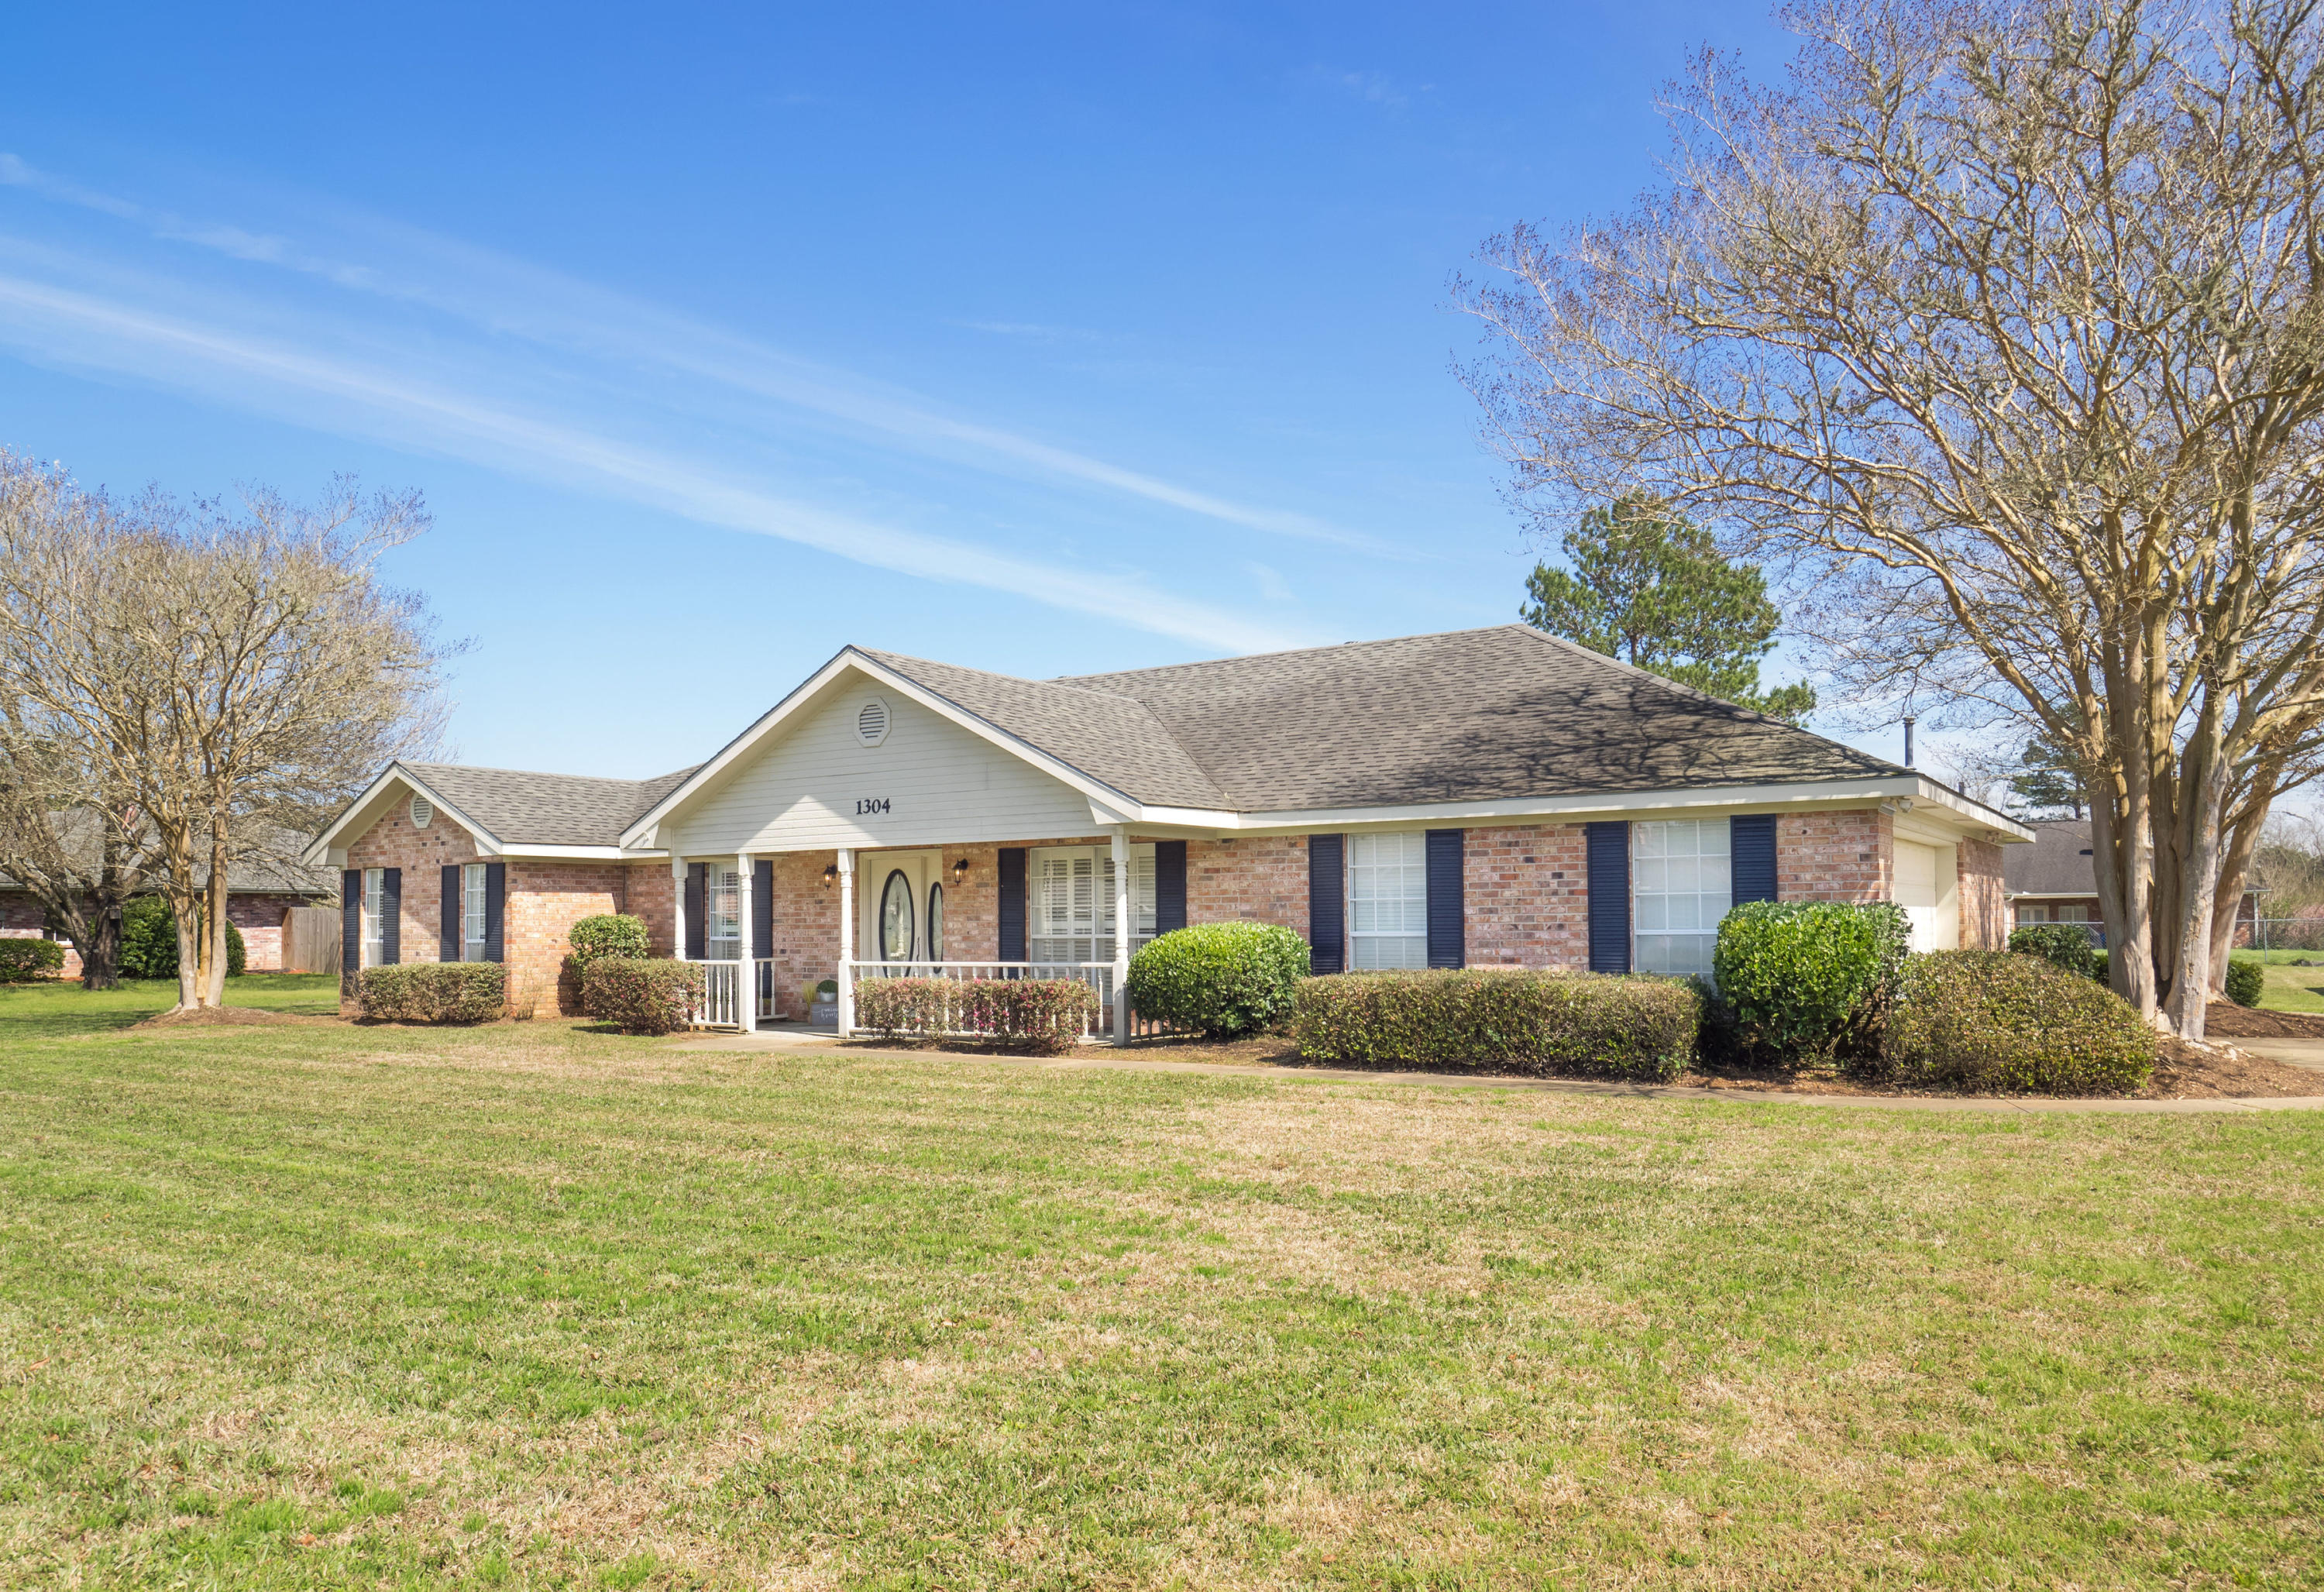 DeRidder home for sale, 1304 Allison Dr, DeRidder LA - $245,500